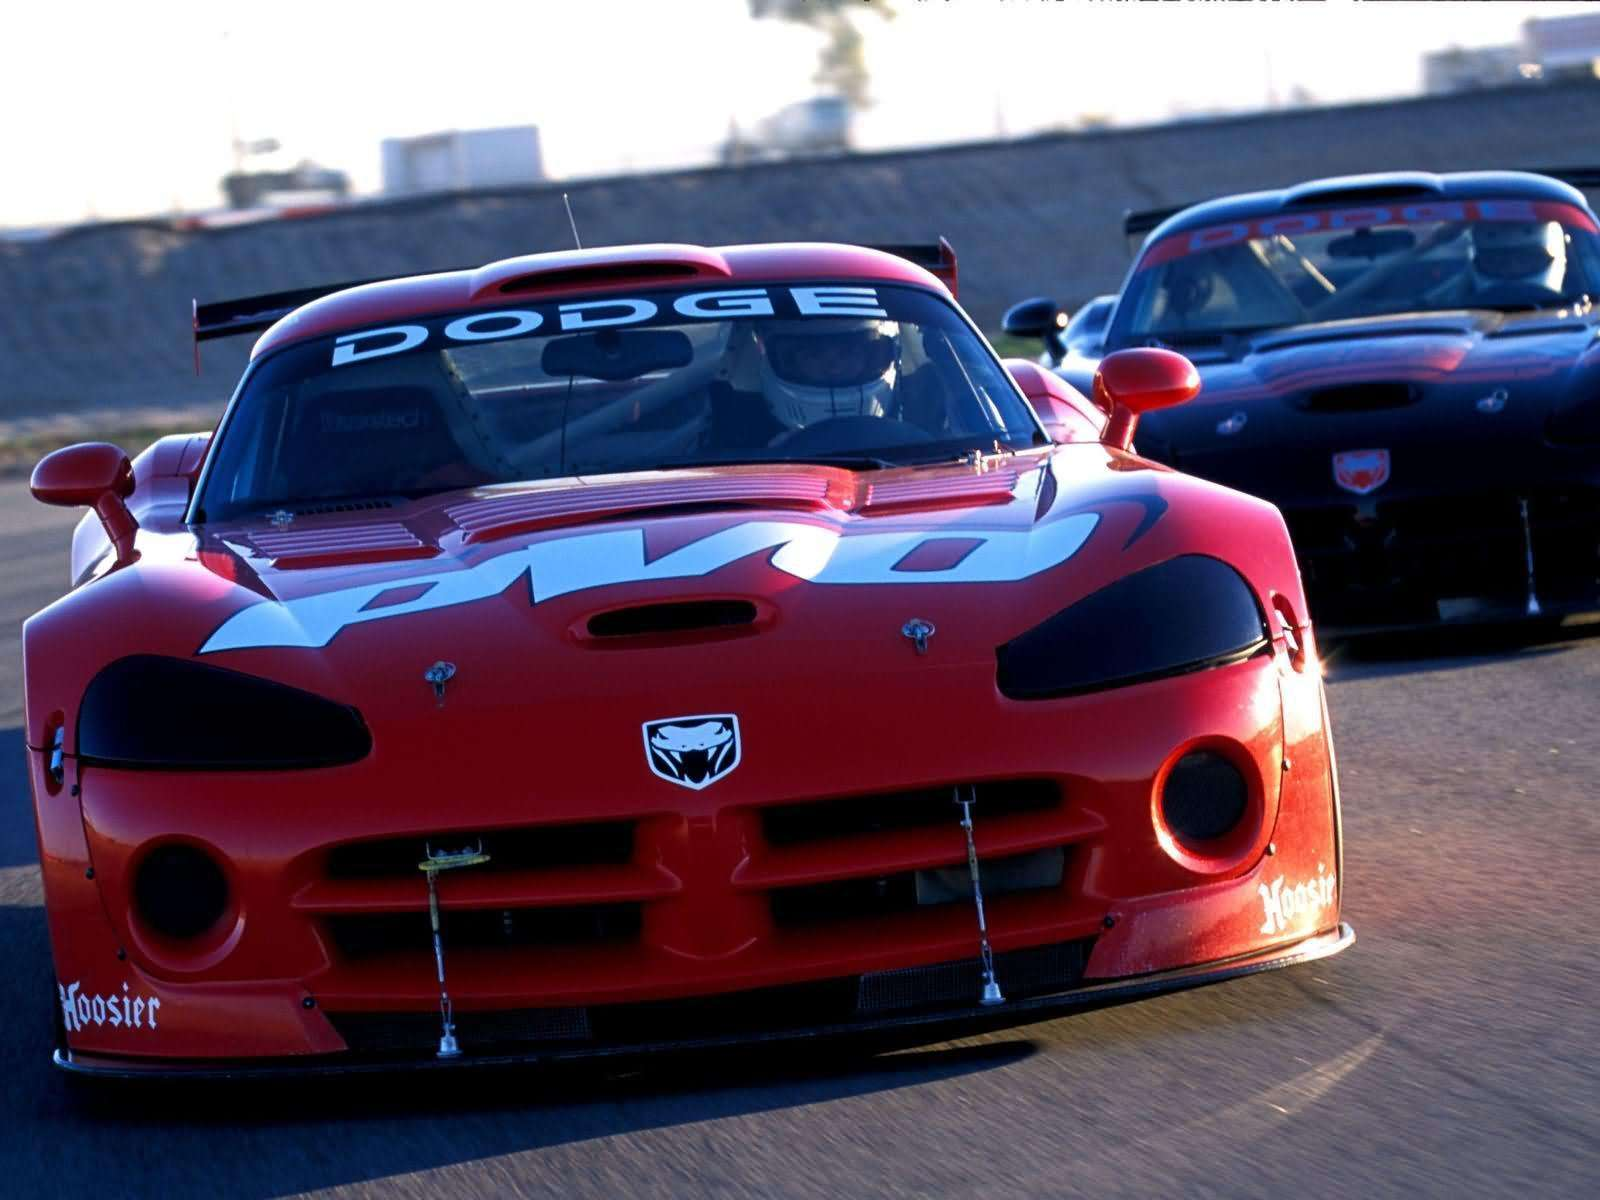 That Time Hennessey Attempted 230 mph in a Viper - Part 1 ... - photo#46